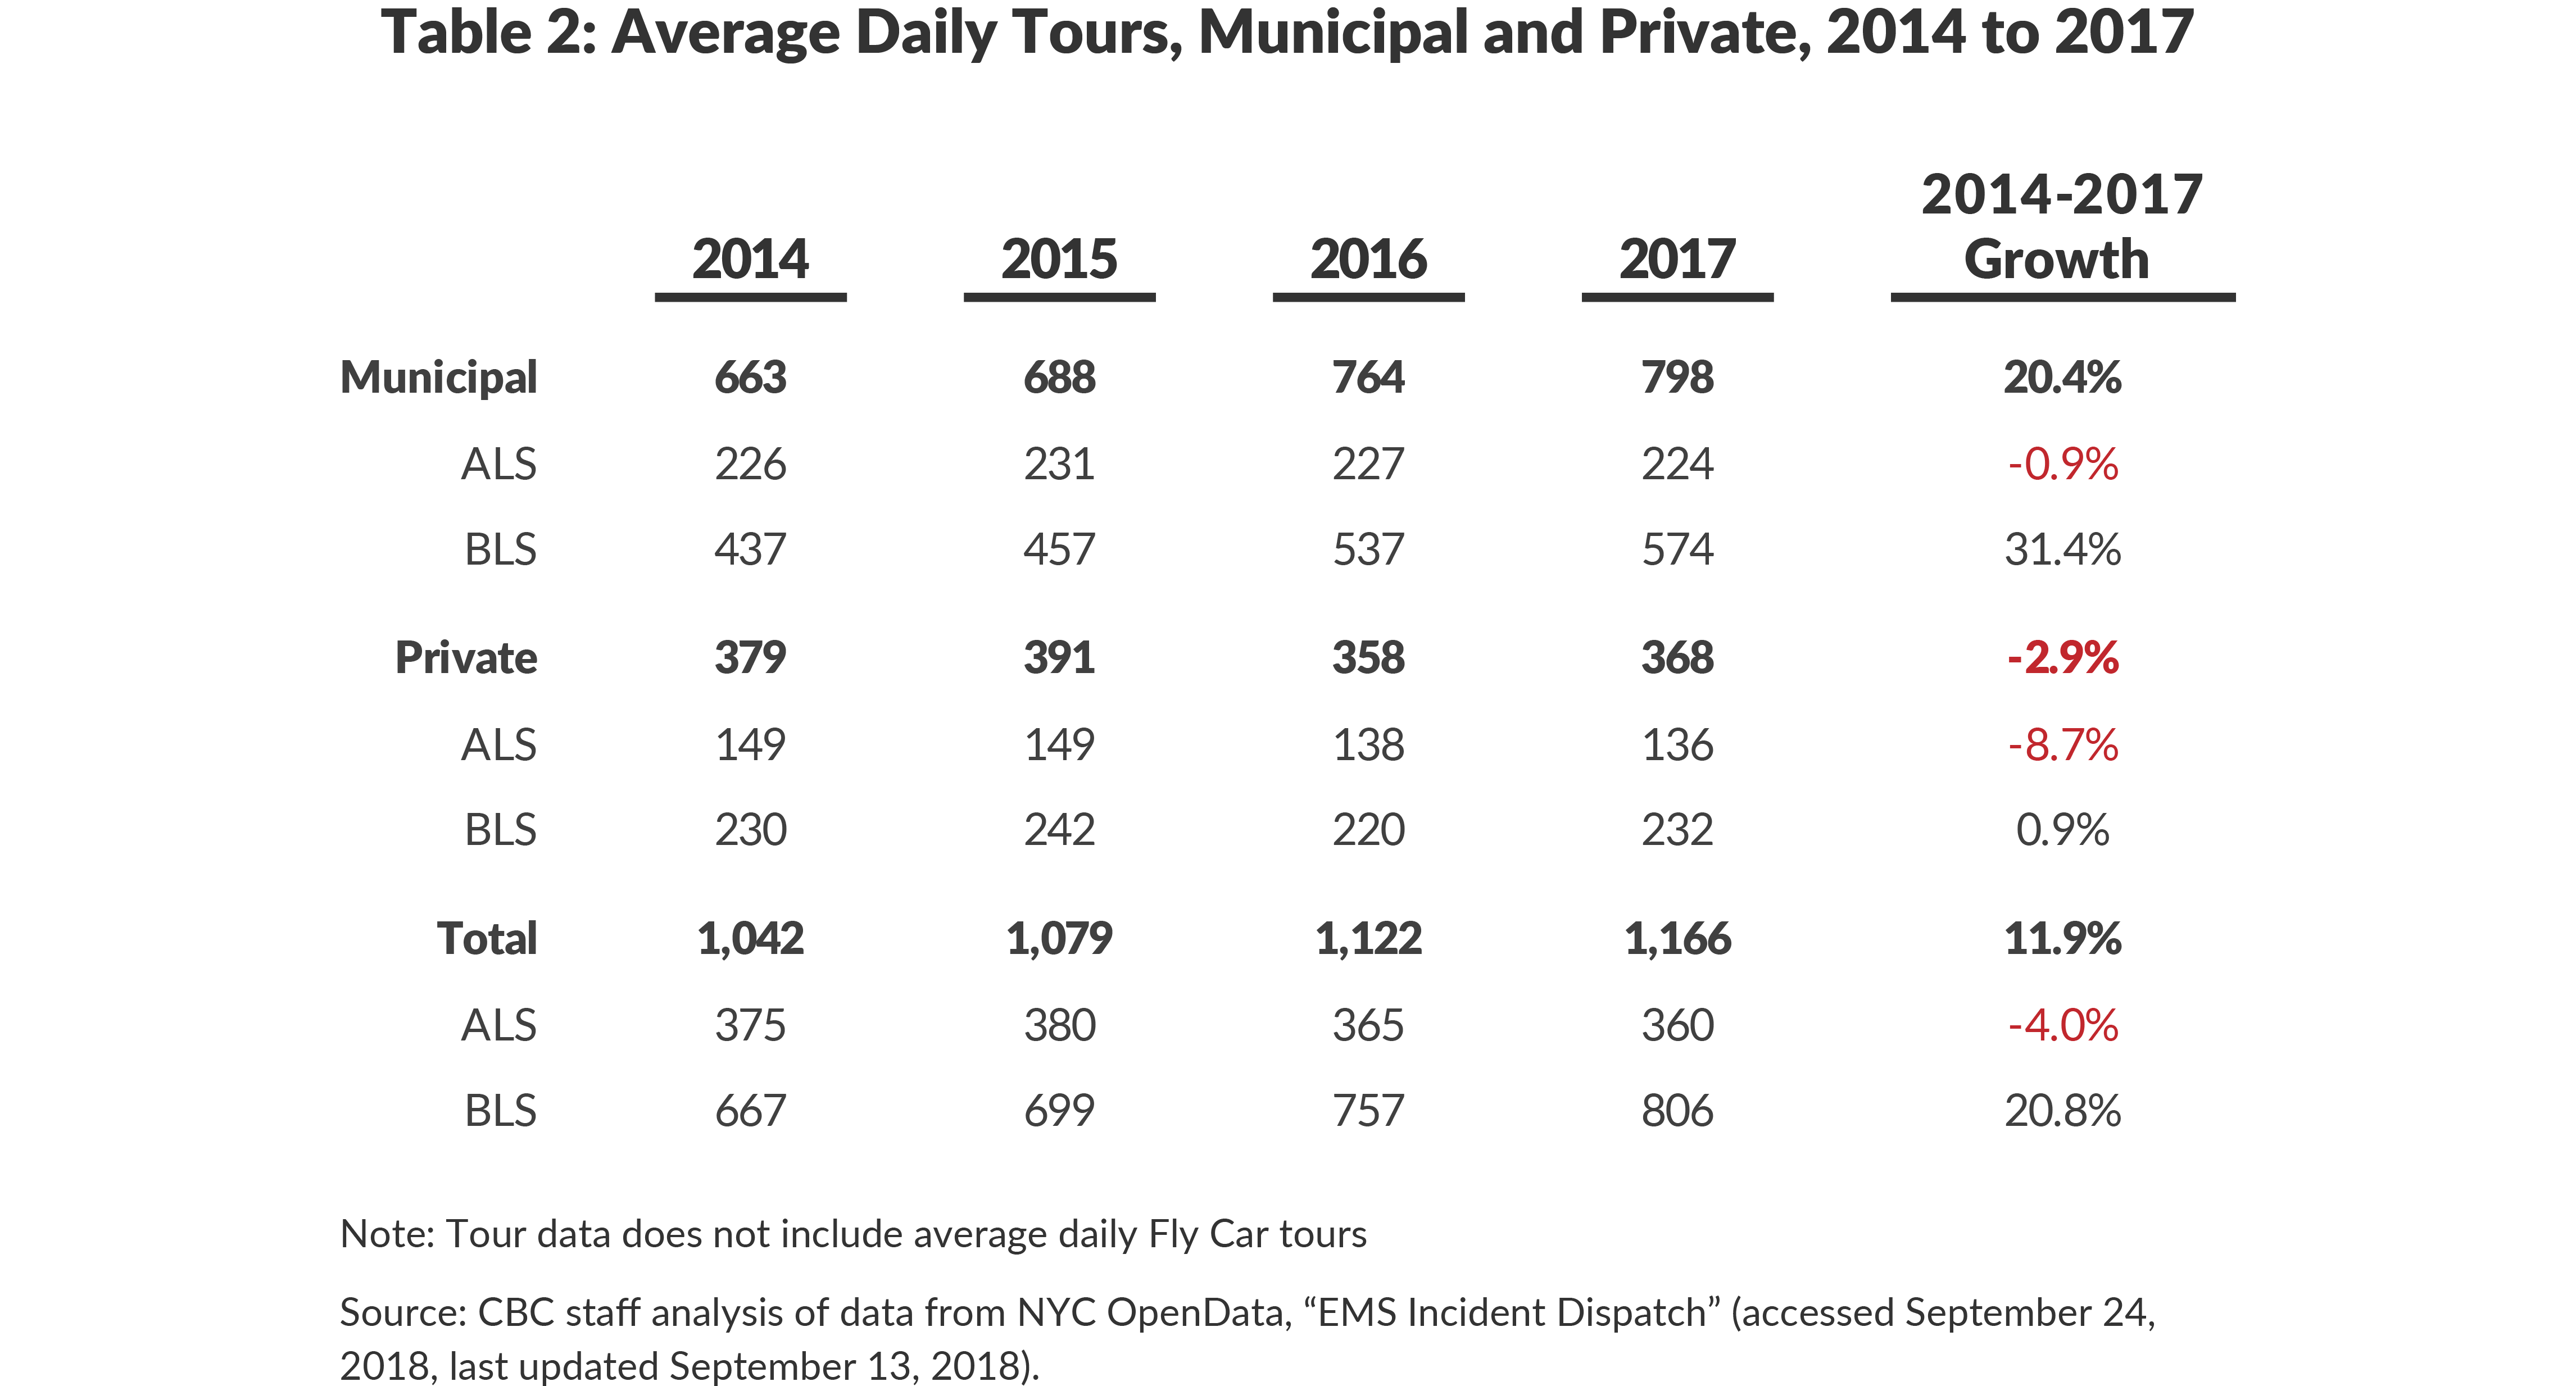 Table 2: Average Daily Tours, Municipal and Private, 2014 to 2017